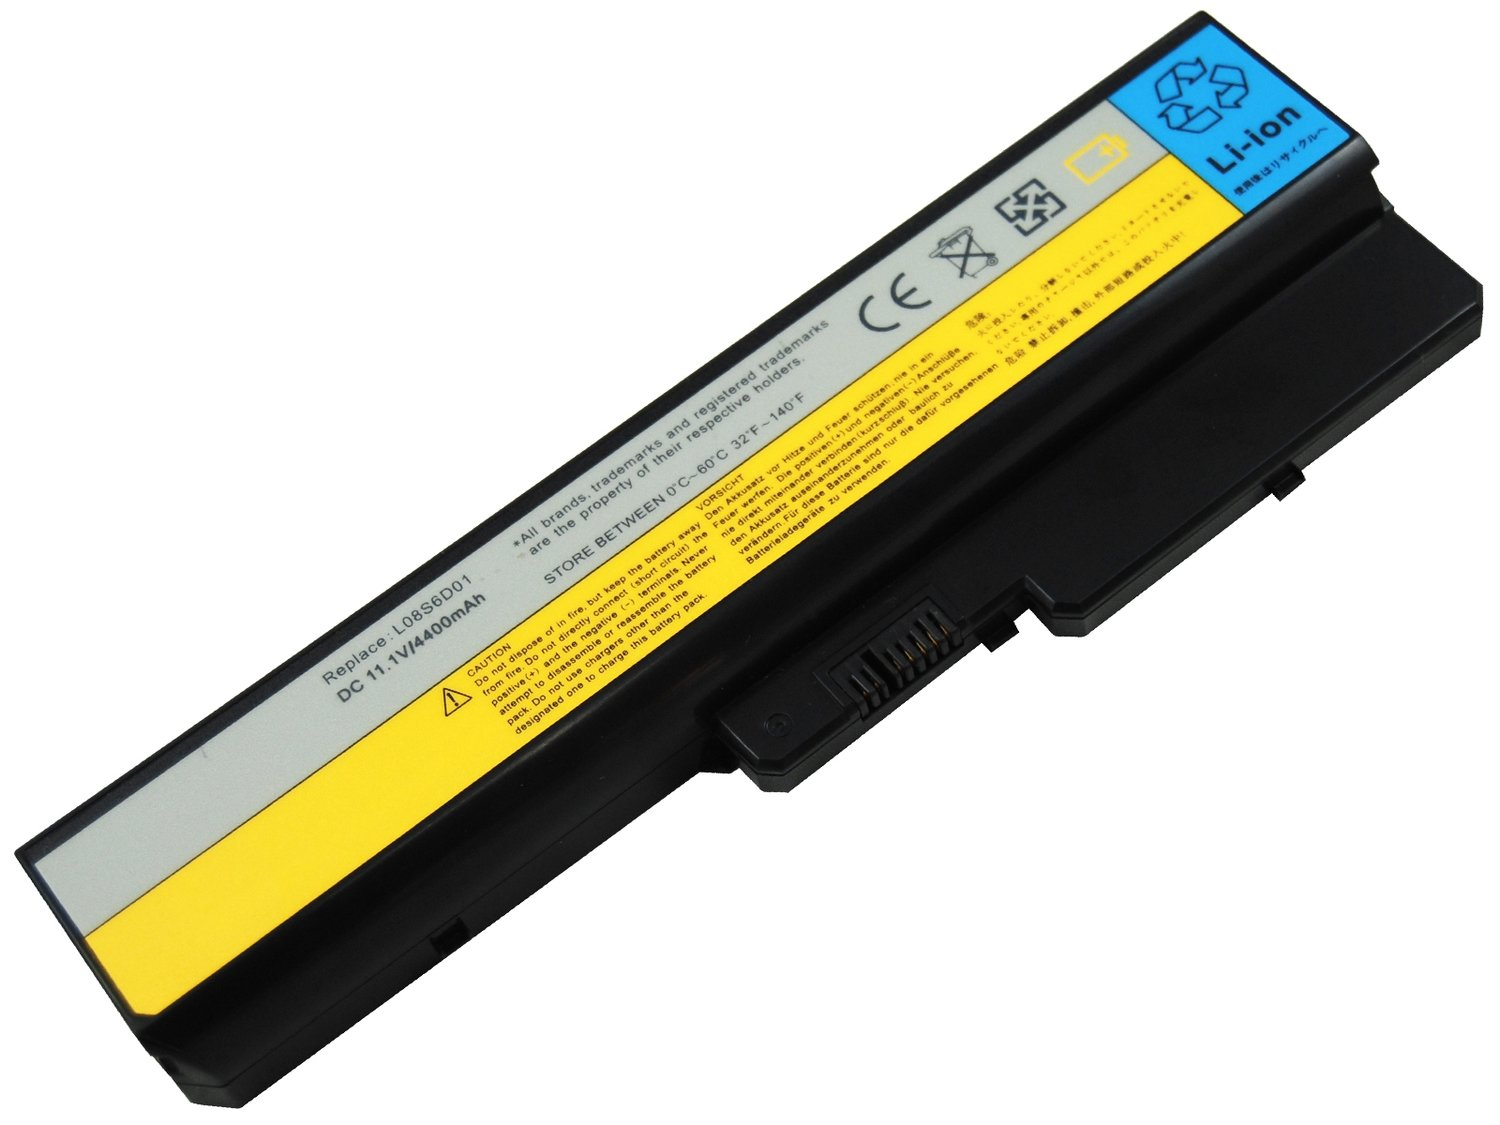 Lenovo Ideapad Y430 FRU L08O6D01 L08O6D02 compatible laptop battery